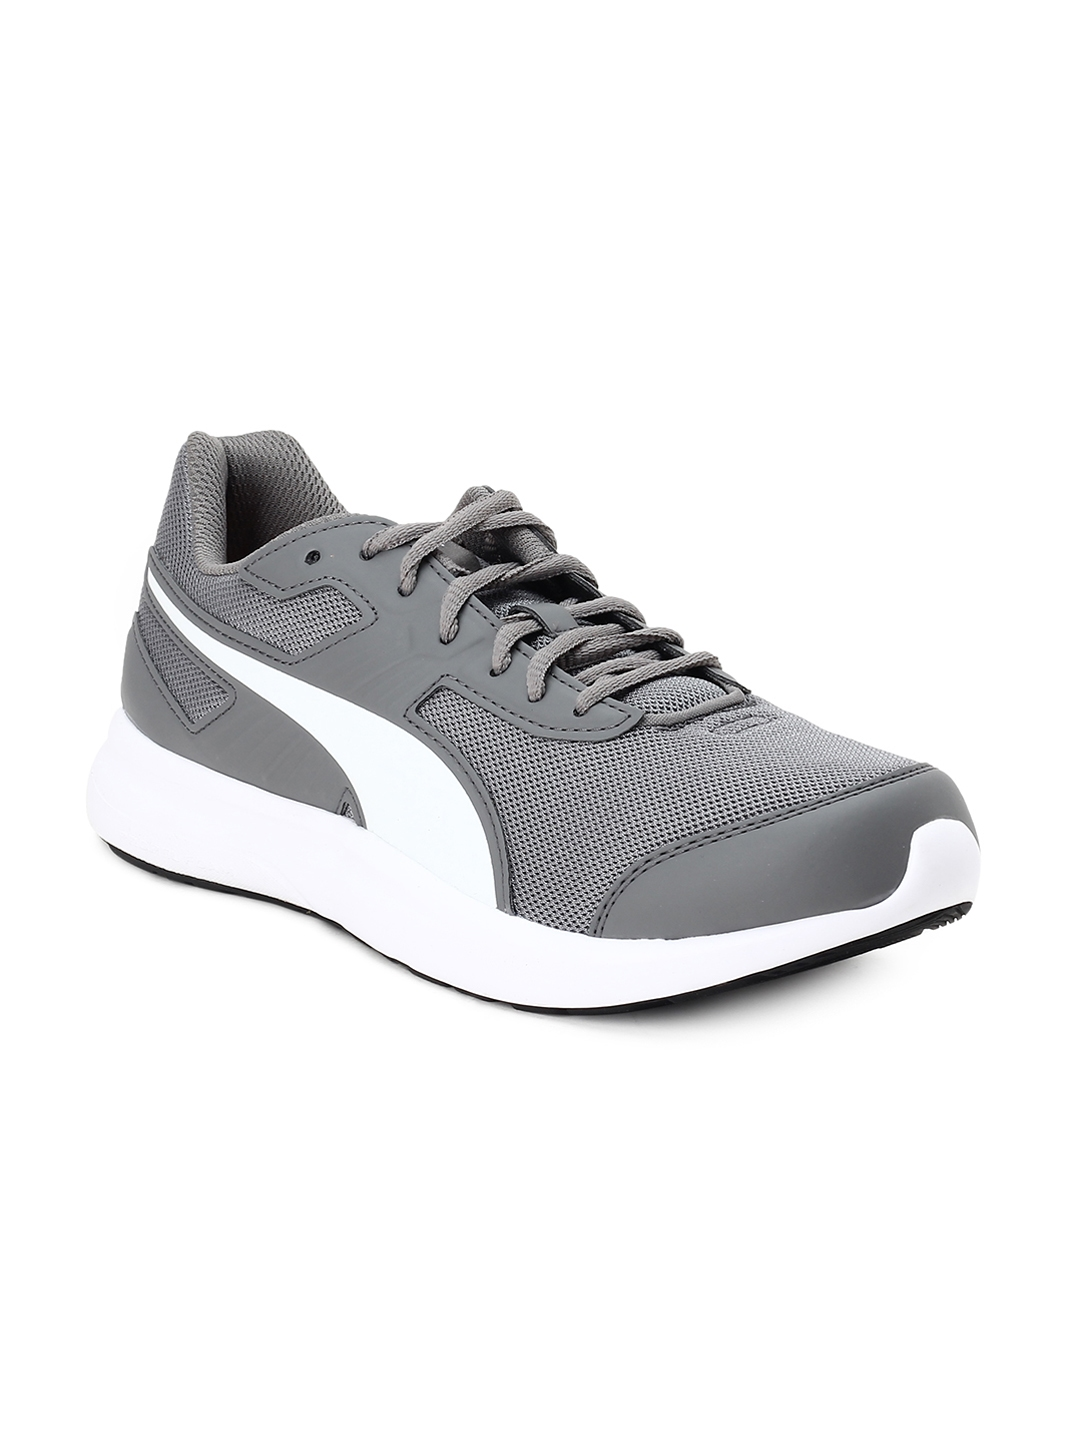 917957c7868bfb Buy Puma Unisex Grey Escaper Mesh IDP Running Shoes - Sports Shoes ...